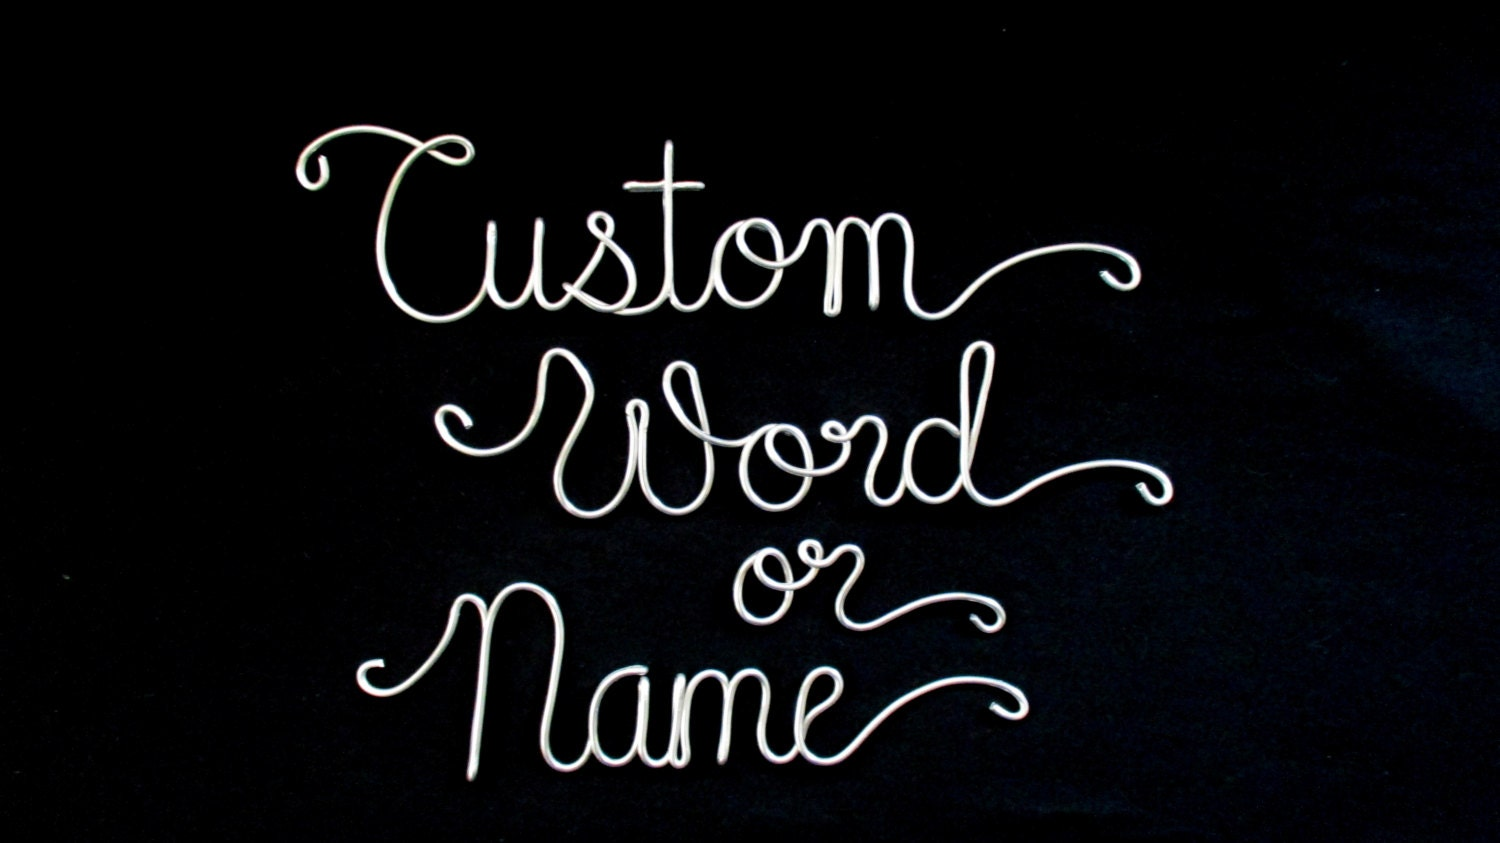 Personalized name ornaments - Custom Wire Name Custom Word Wire Name Personalized Name Custom Name